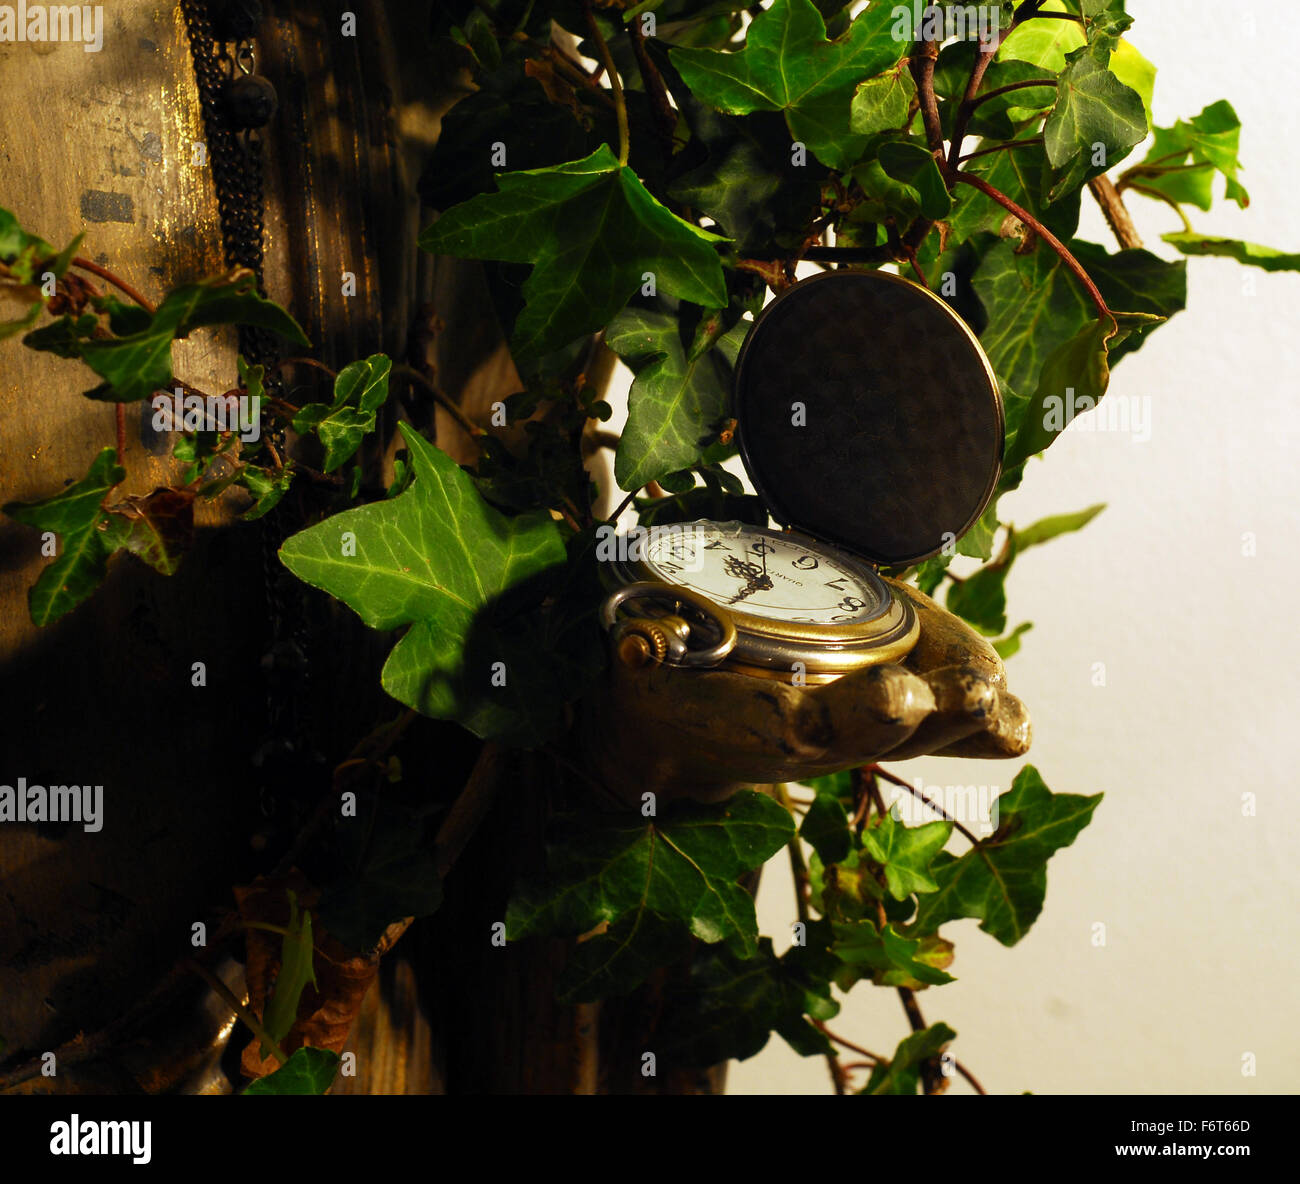 statue,face,sculpture,ivy leaves,time,watch,buddism,eaastern religion,religuos icon, - Stock Image